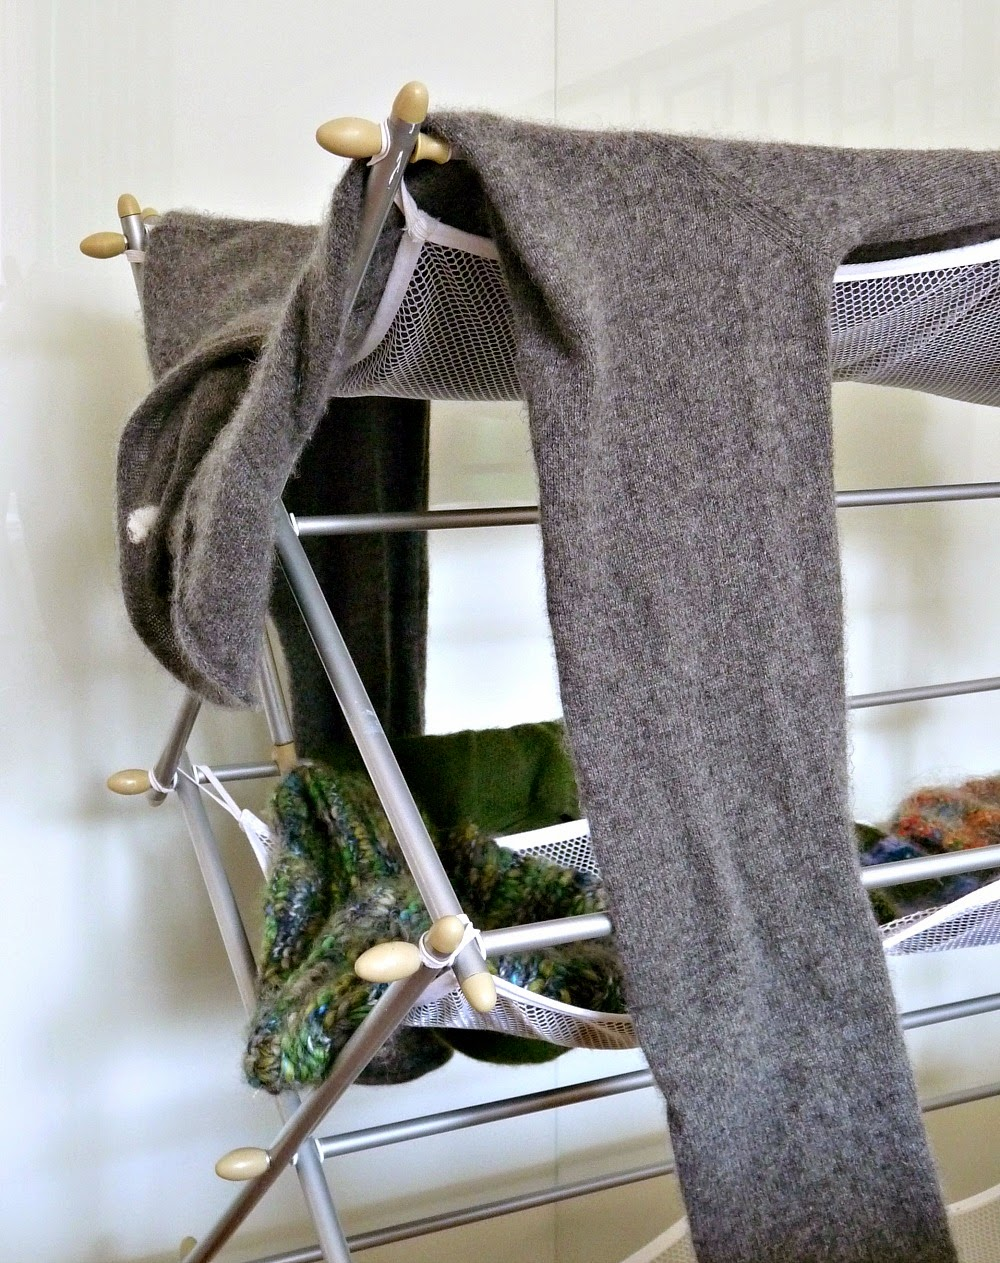 How to Dry Wool Sweaters